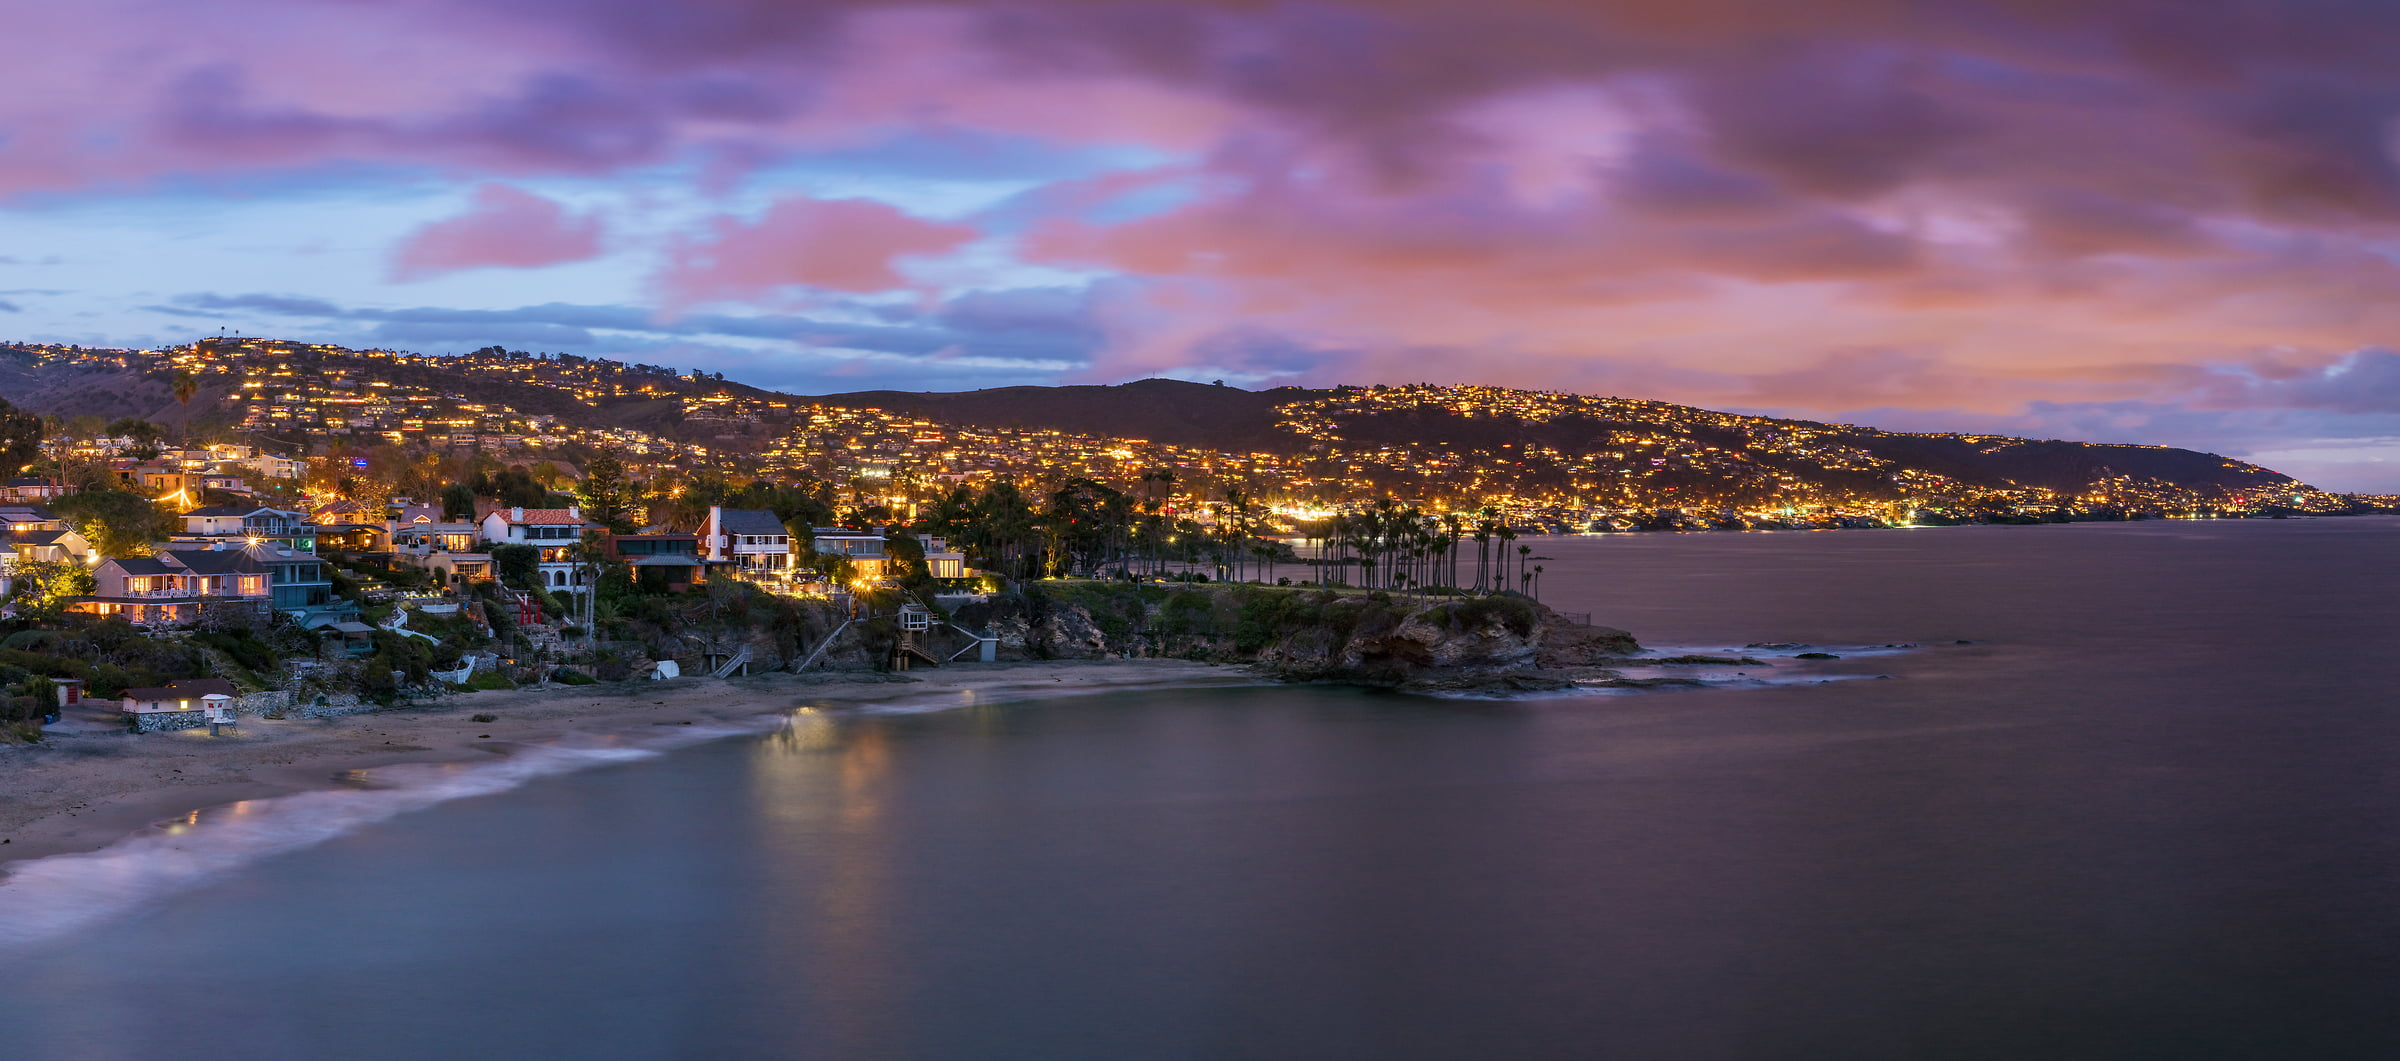 119 megapixels! A very high resolution, large-format VAST photo of Laguna Beach at sunset; landscape created by Jim Tarpo in California